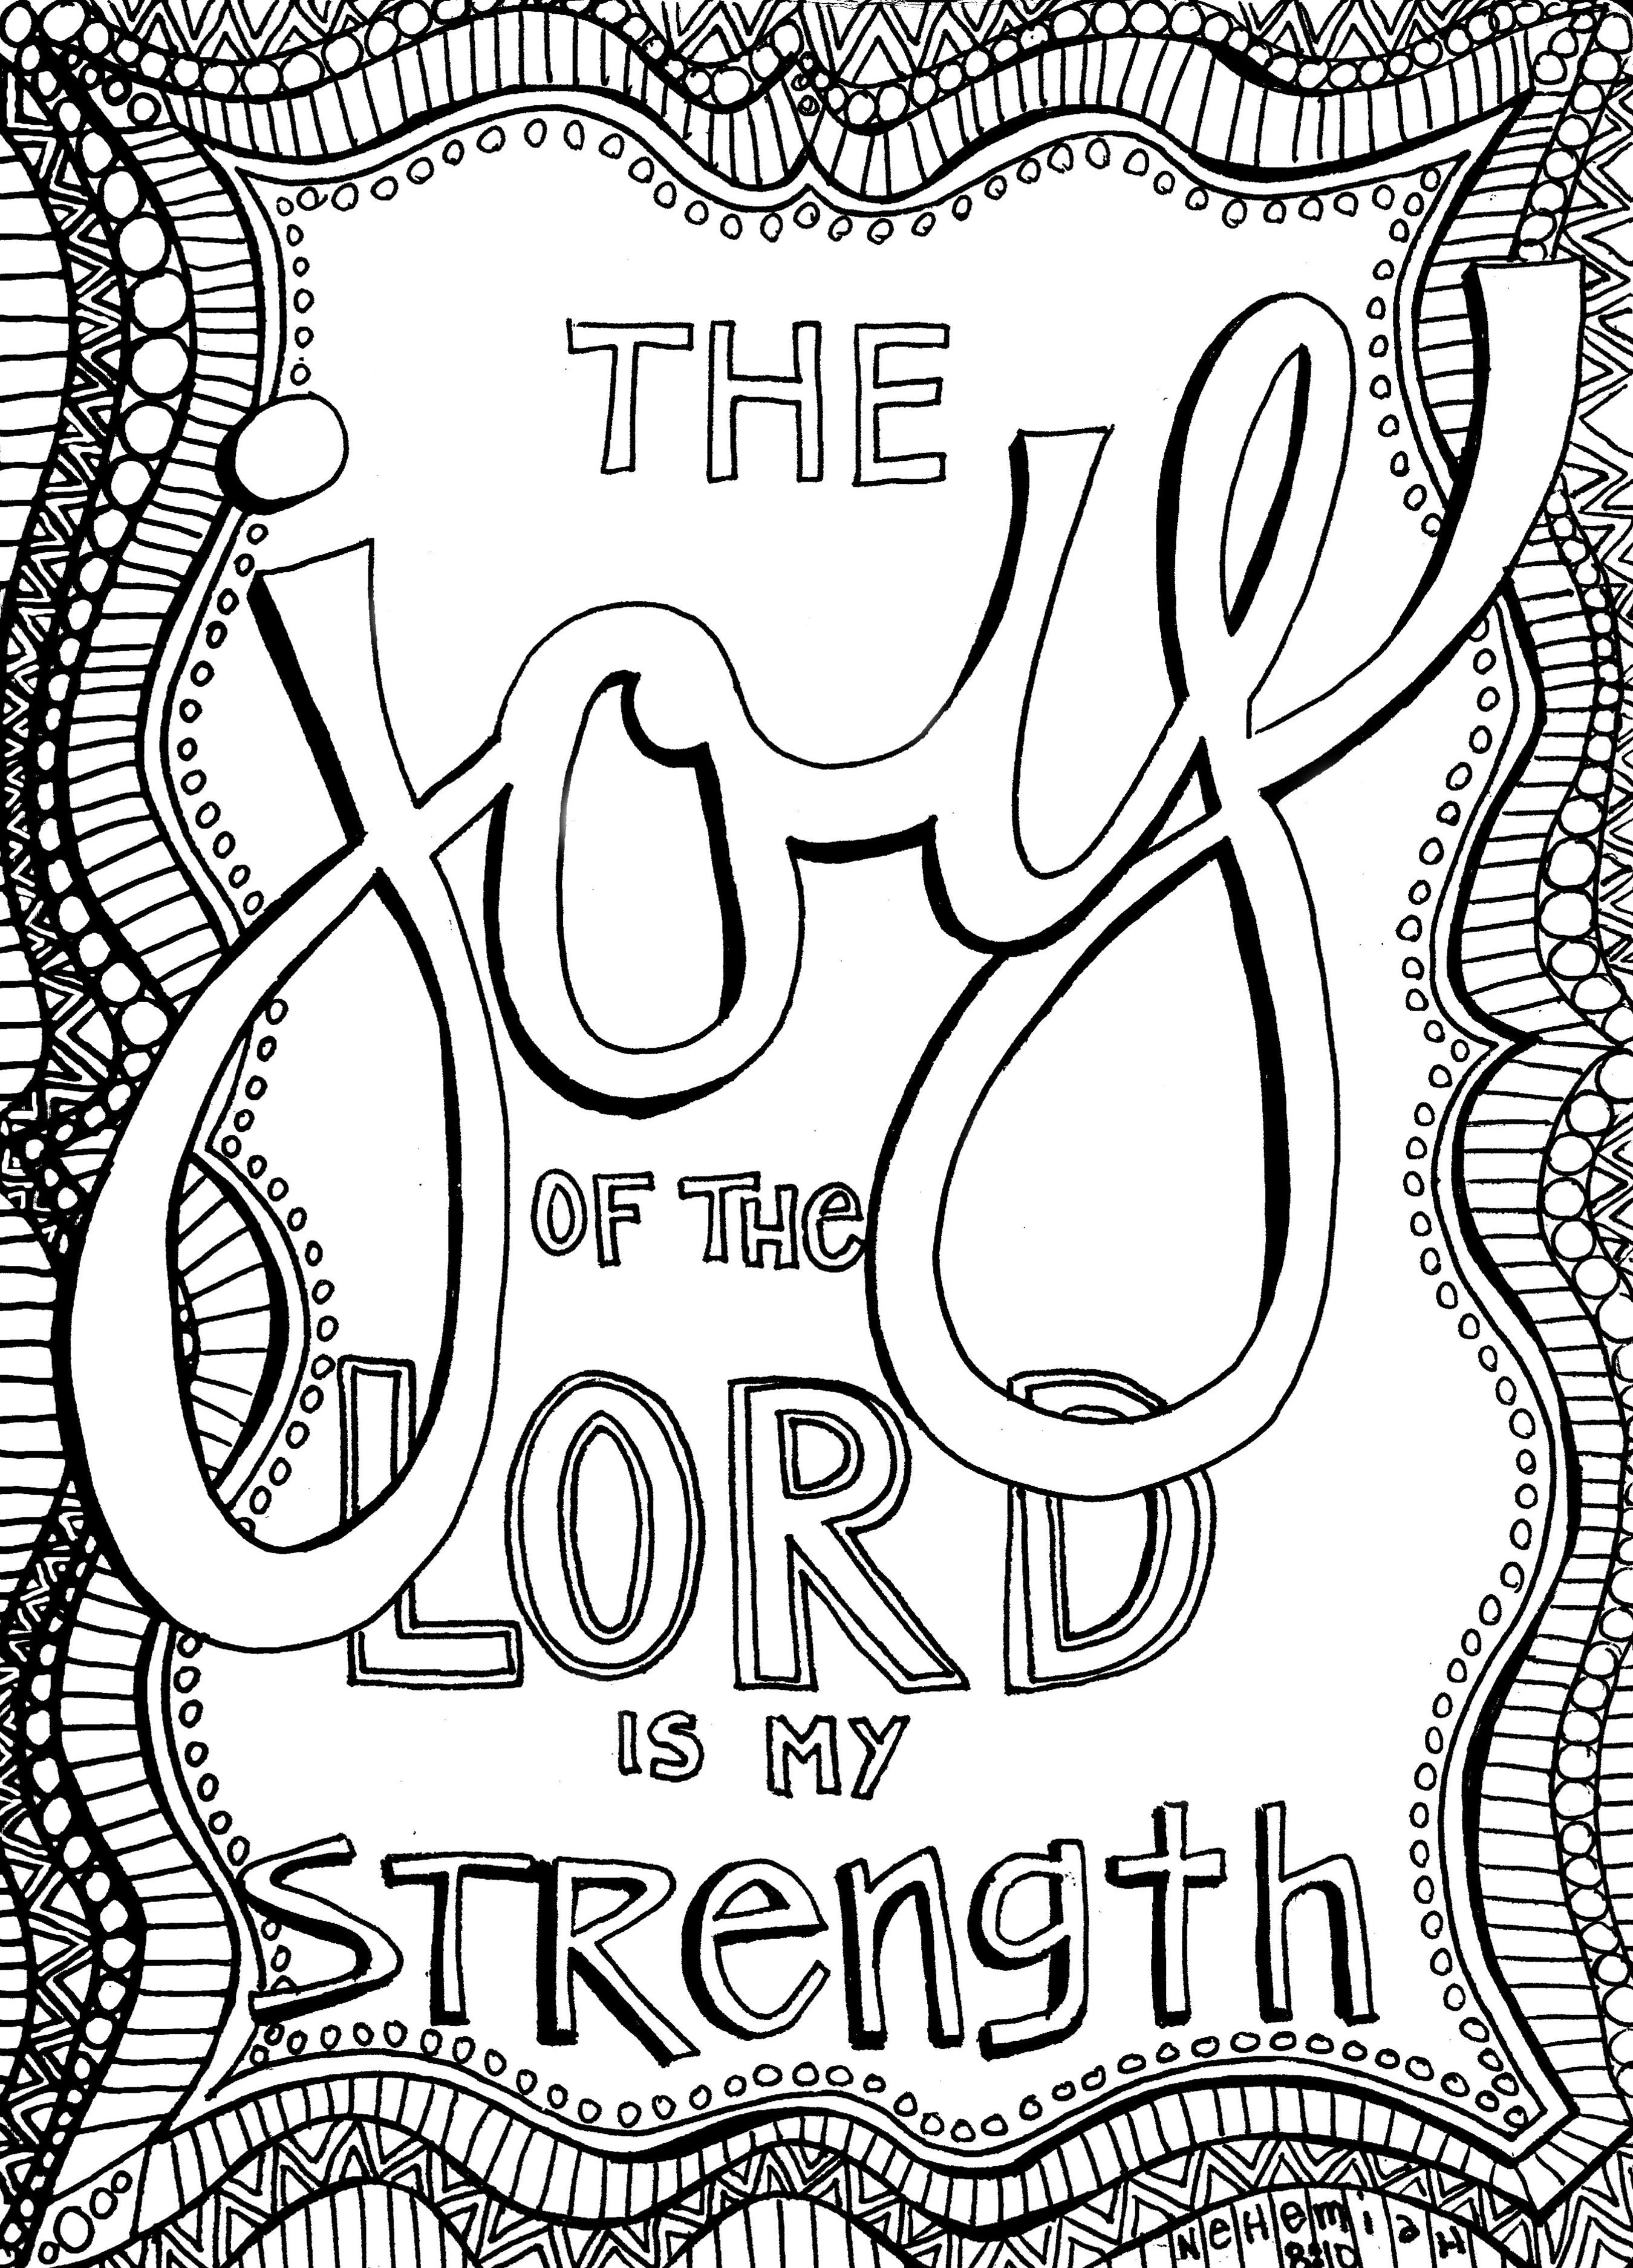 Free Christian Coloring Pages For Adults - Roundup | Bible - Free Printable Christian Art